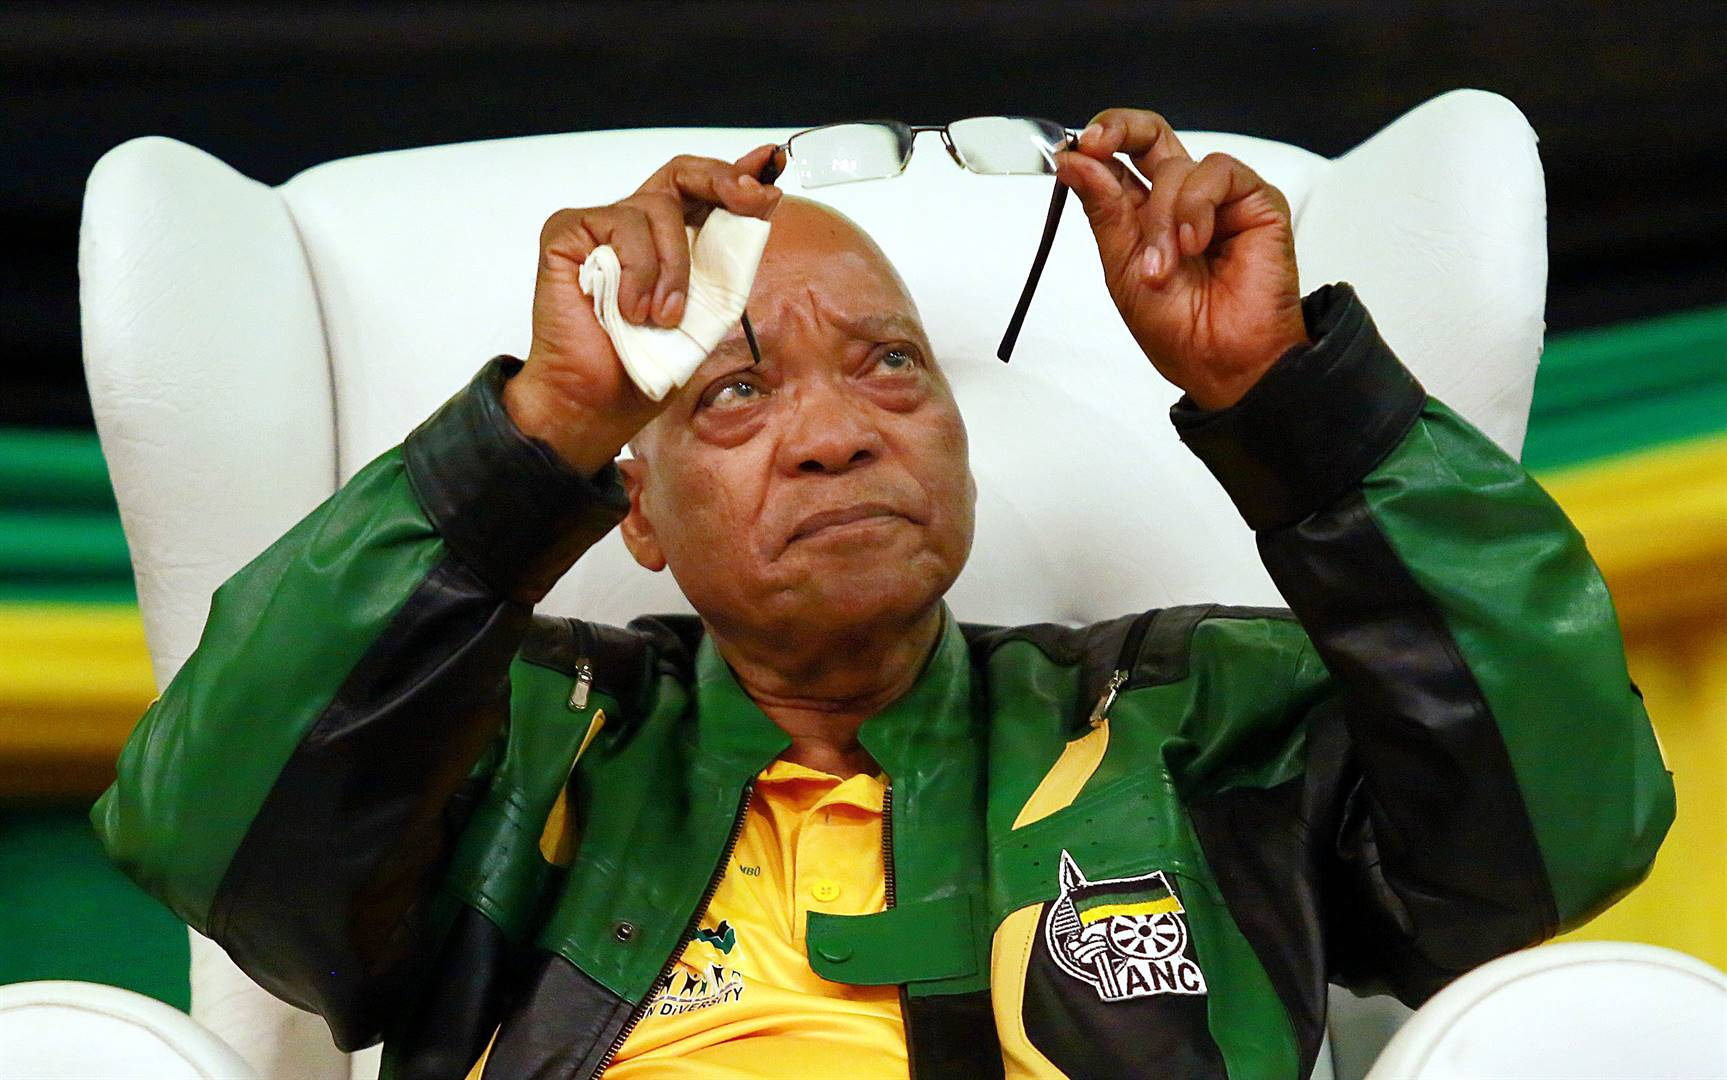 Former president of South Africa and the ANC Jacob Zuma, during an election event in 2014. Photo: Rajesh Jantilal